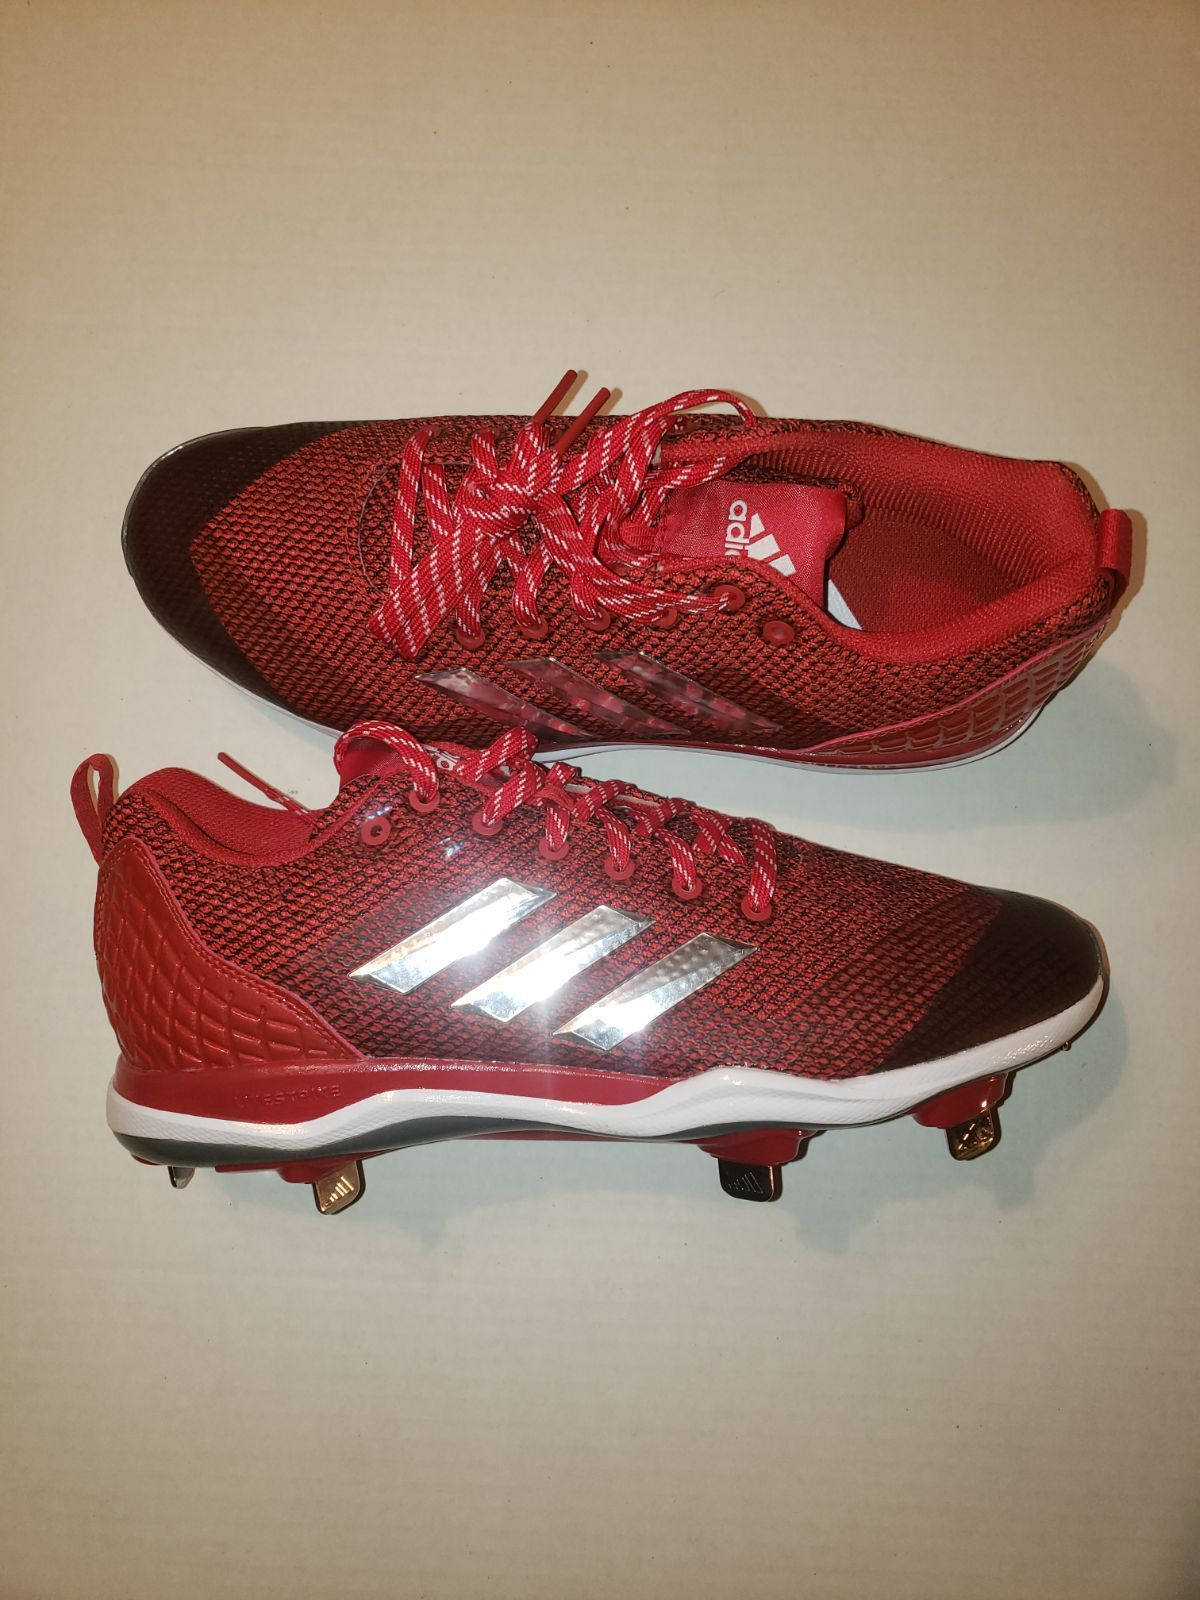 Can You Wear Baseball Cleats For Football Adidas Baseball Cleats New Never Worn Without The Box Size 10 Adidas Baseball Cleats Baseball Cleats